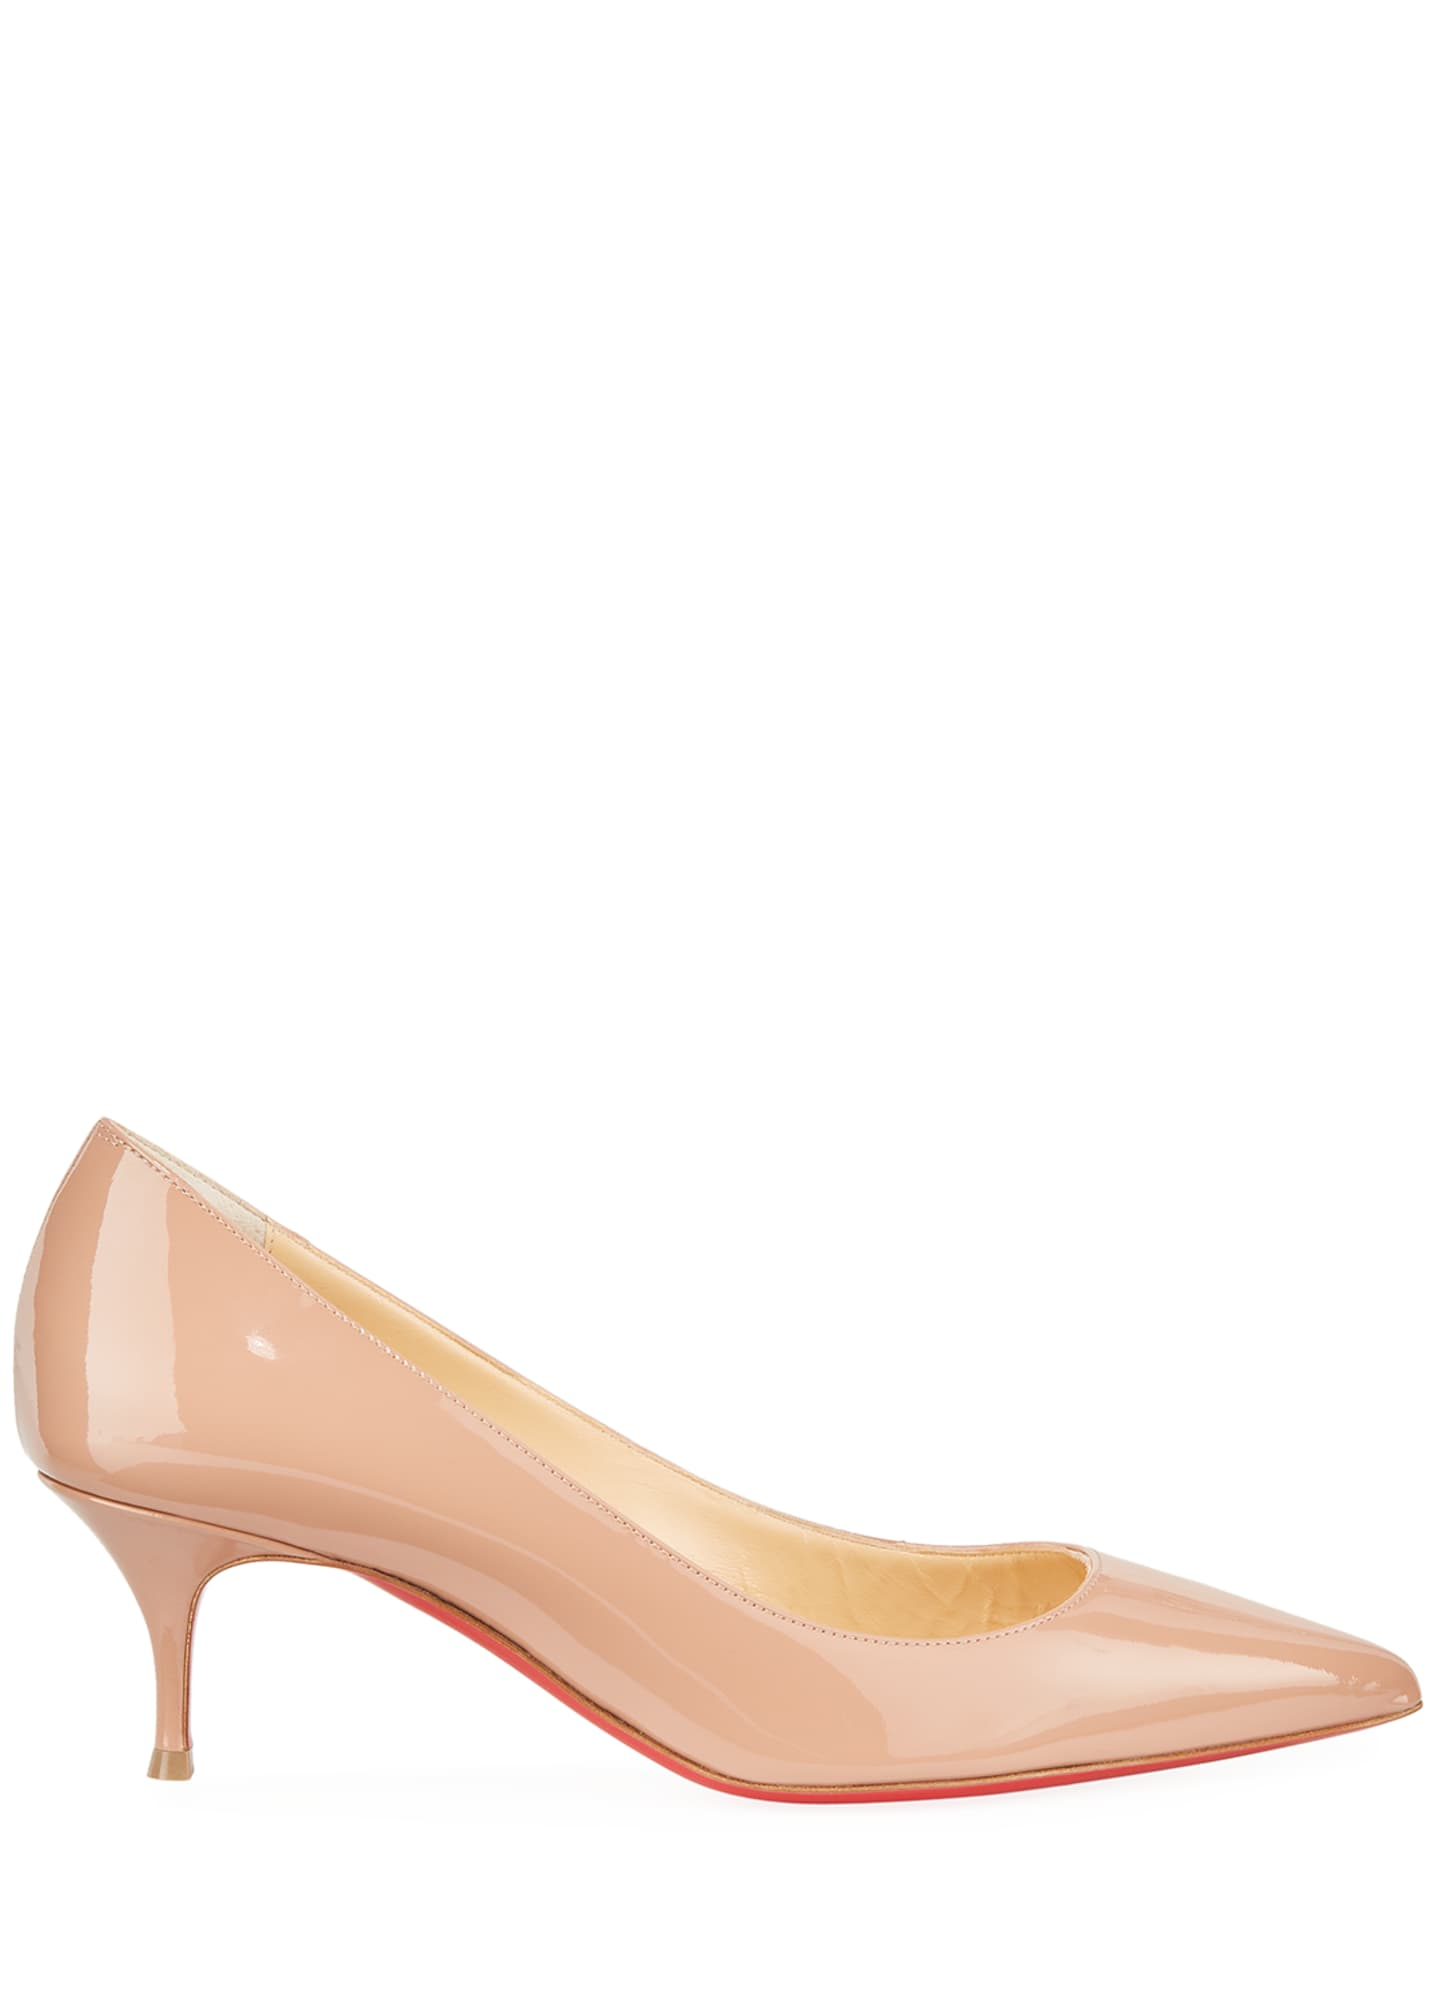 Image 2 of 4: Kate Patent Red Sole Pumps